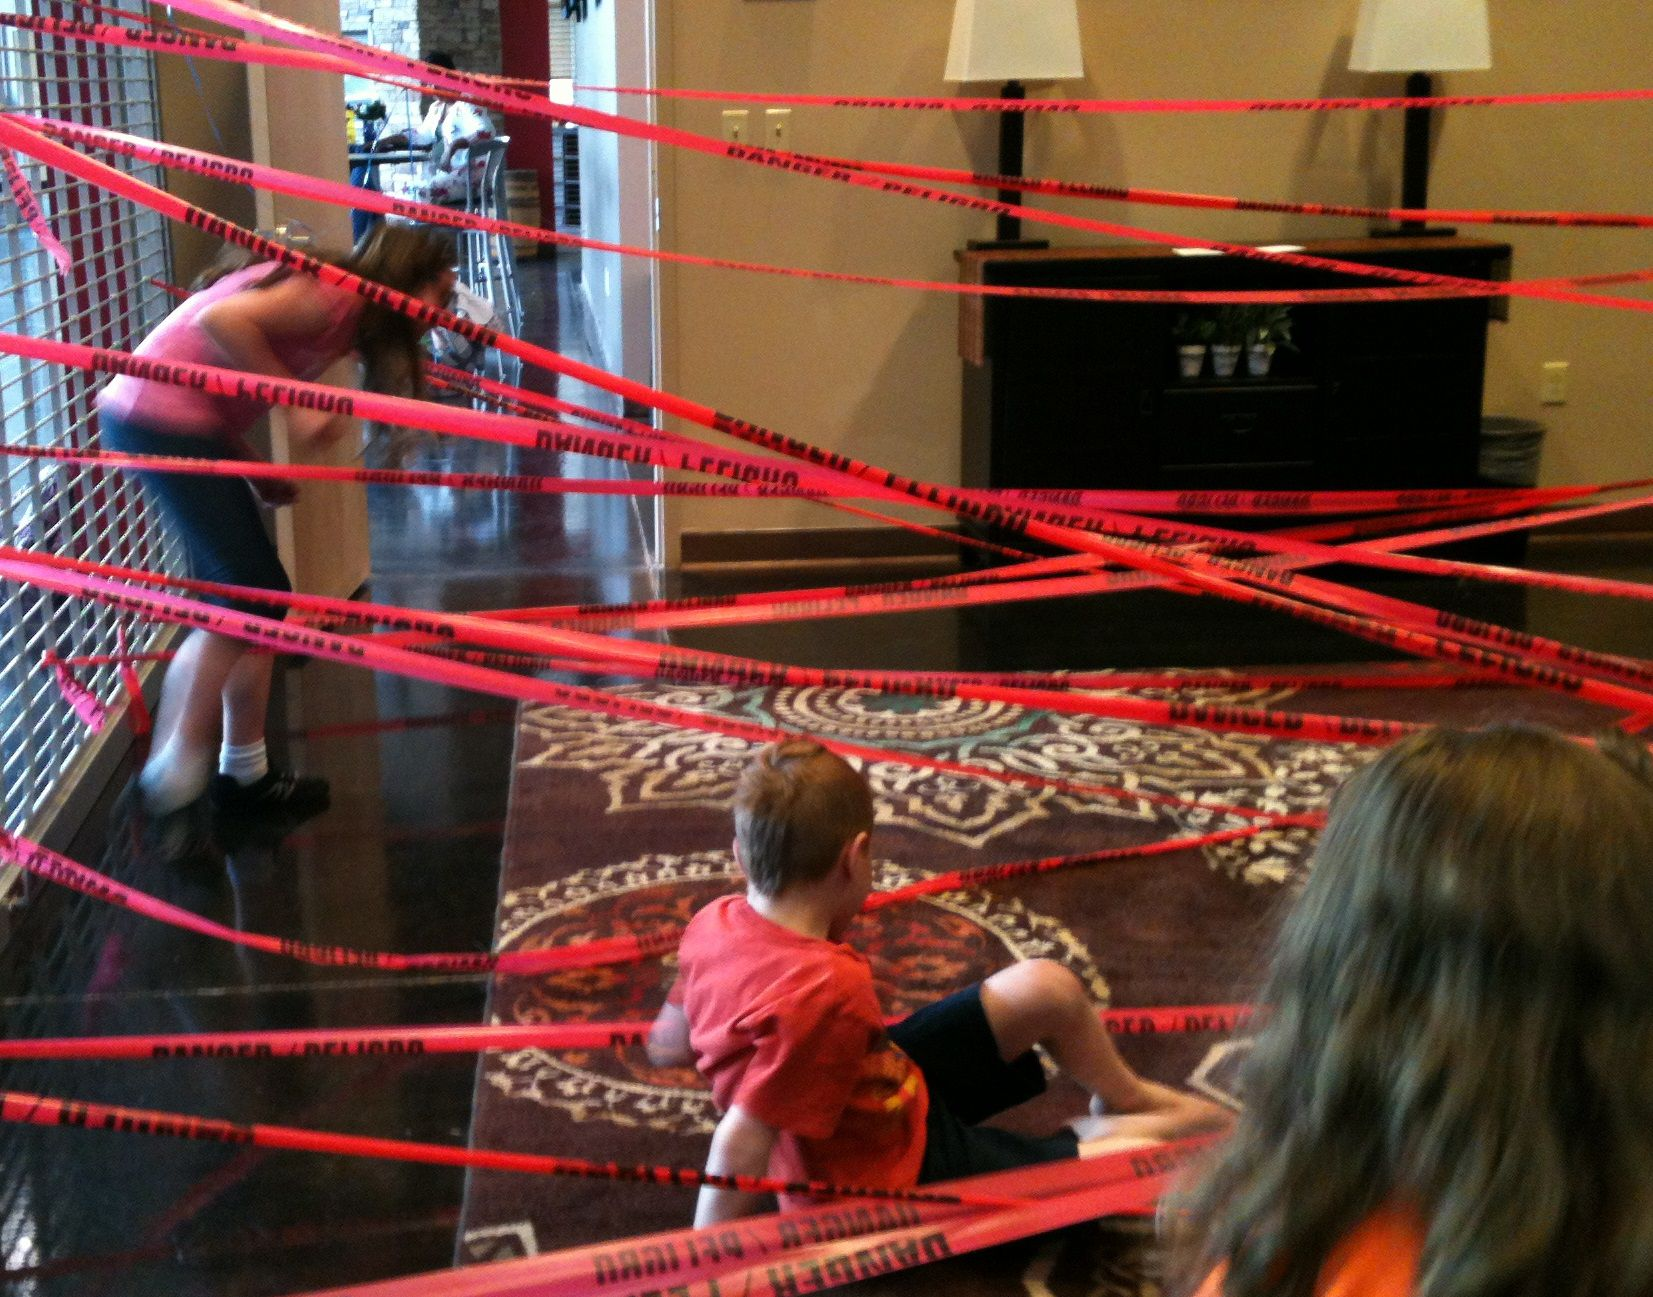 Spy Games For A Secret Agent Birthday Party